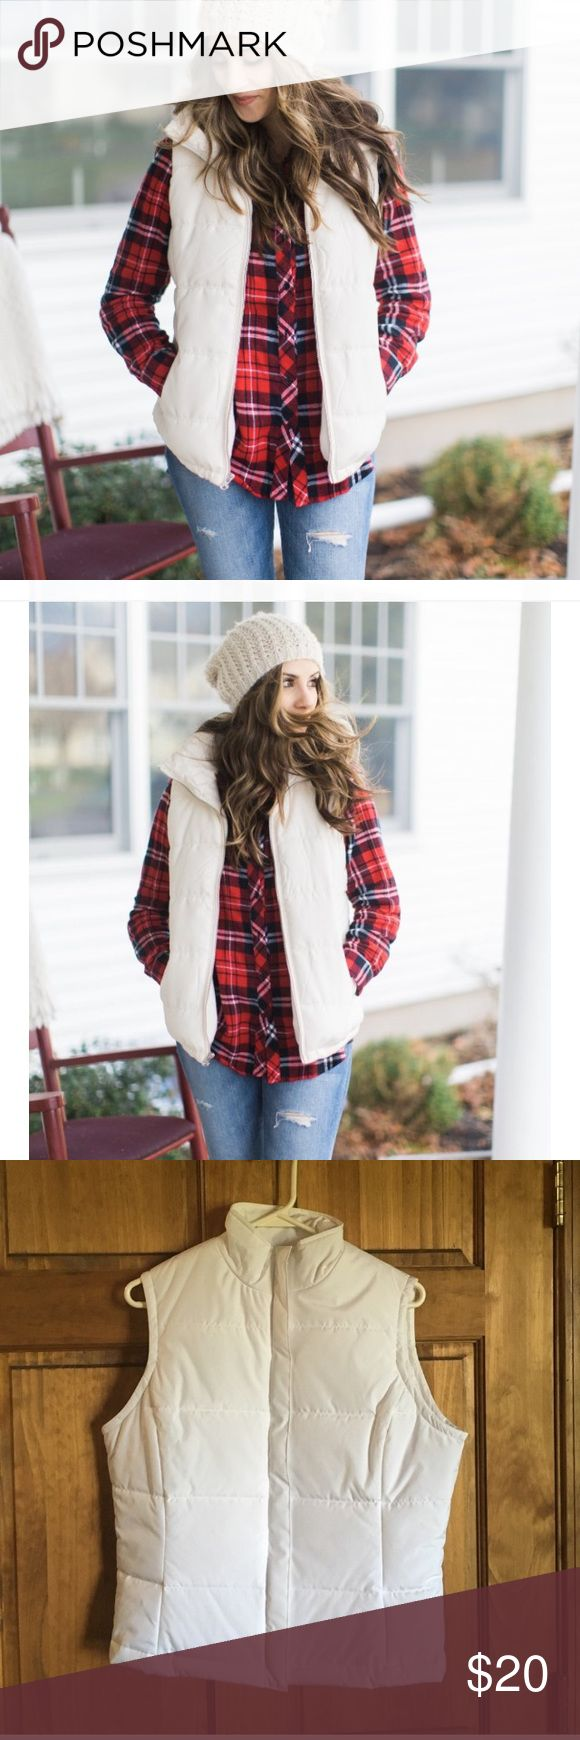 White puffer vest! Excellent condition! No rips or stains. Moda international brand from the Victoria's Secret catalog! Check out my other listings, bundle and save! Victoria's Secret Jackets & Coats Vests